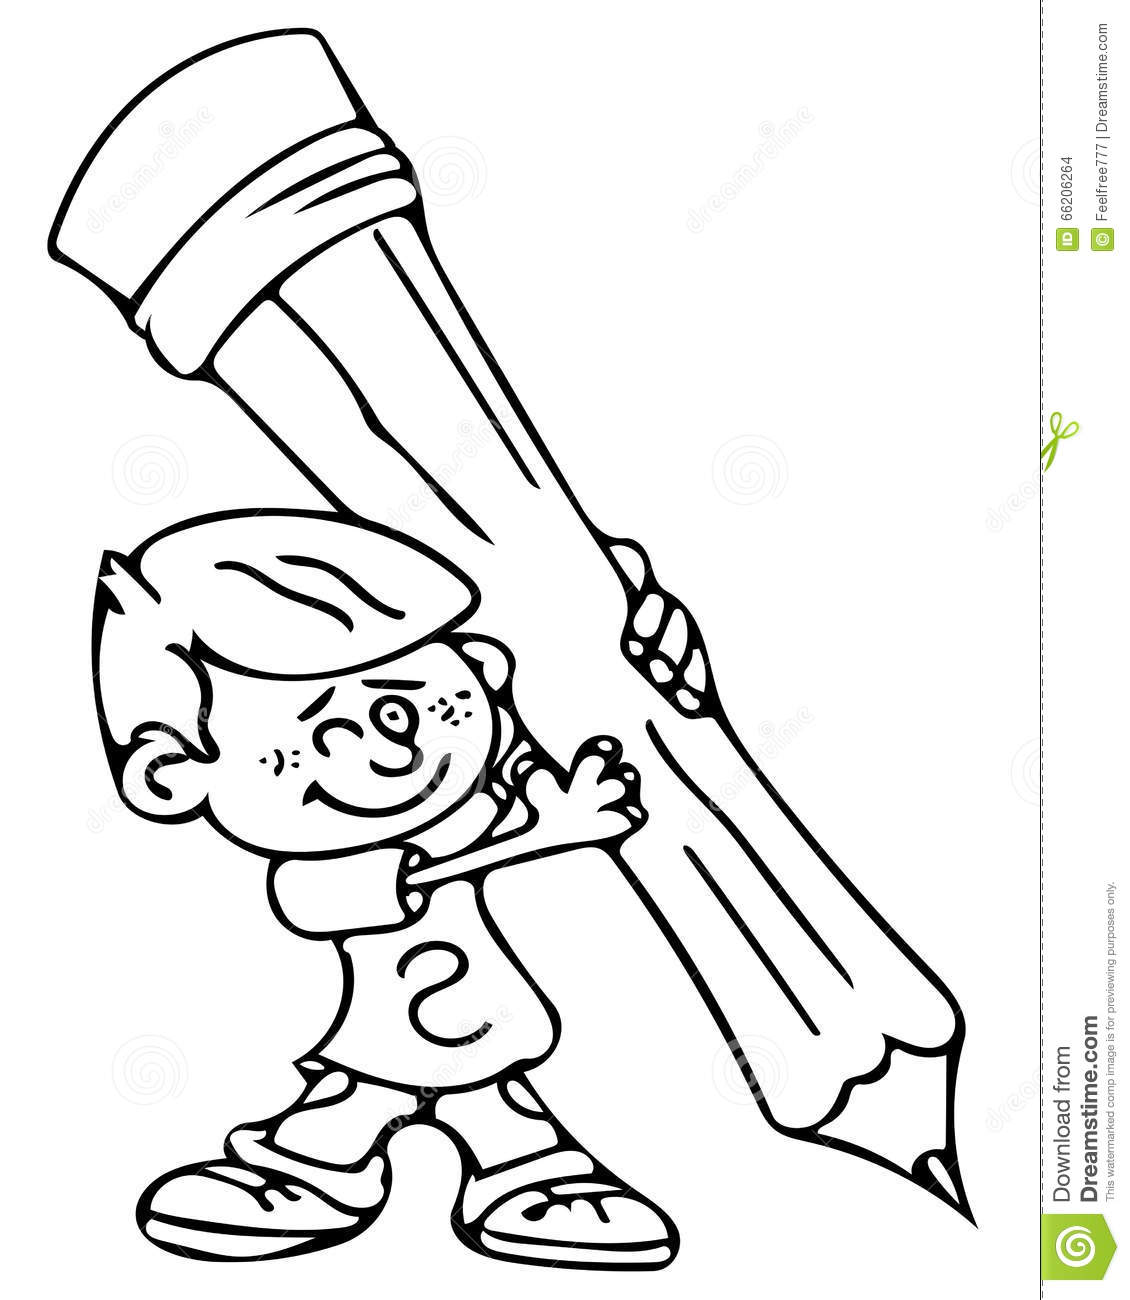 Downloads Online Coloring Page Coloring Picture Of A Pencil 44